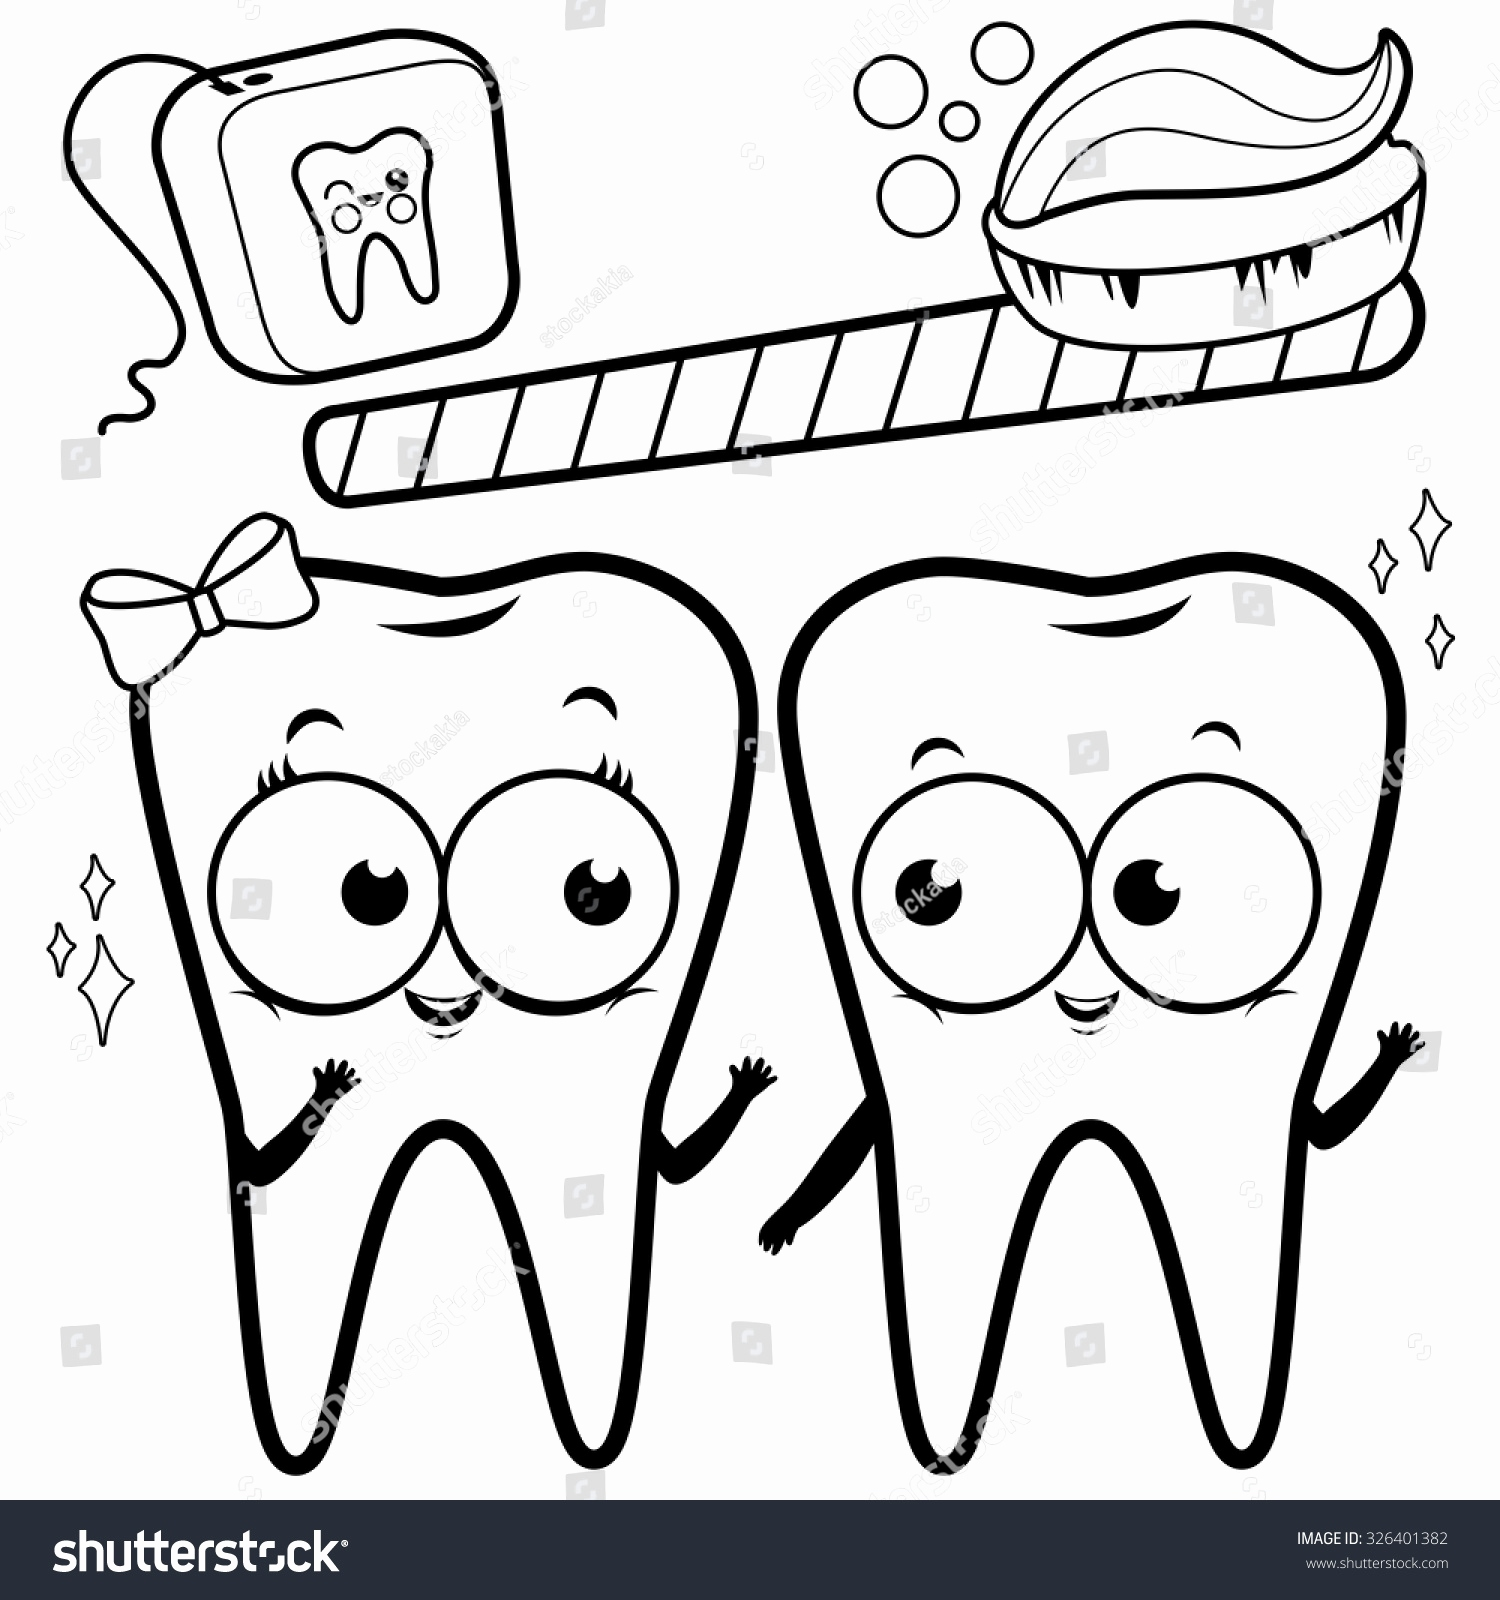 1500x1600 Dental Coloring Pages Dentist Luxury Page Cartoon Teeth Toothbrush